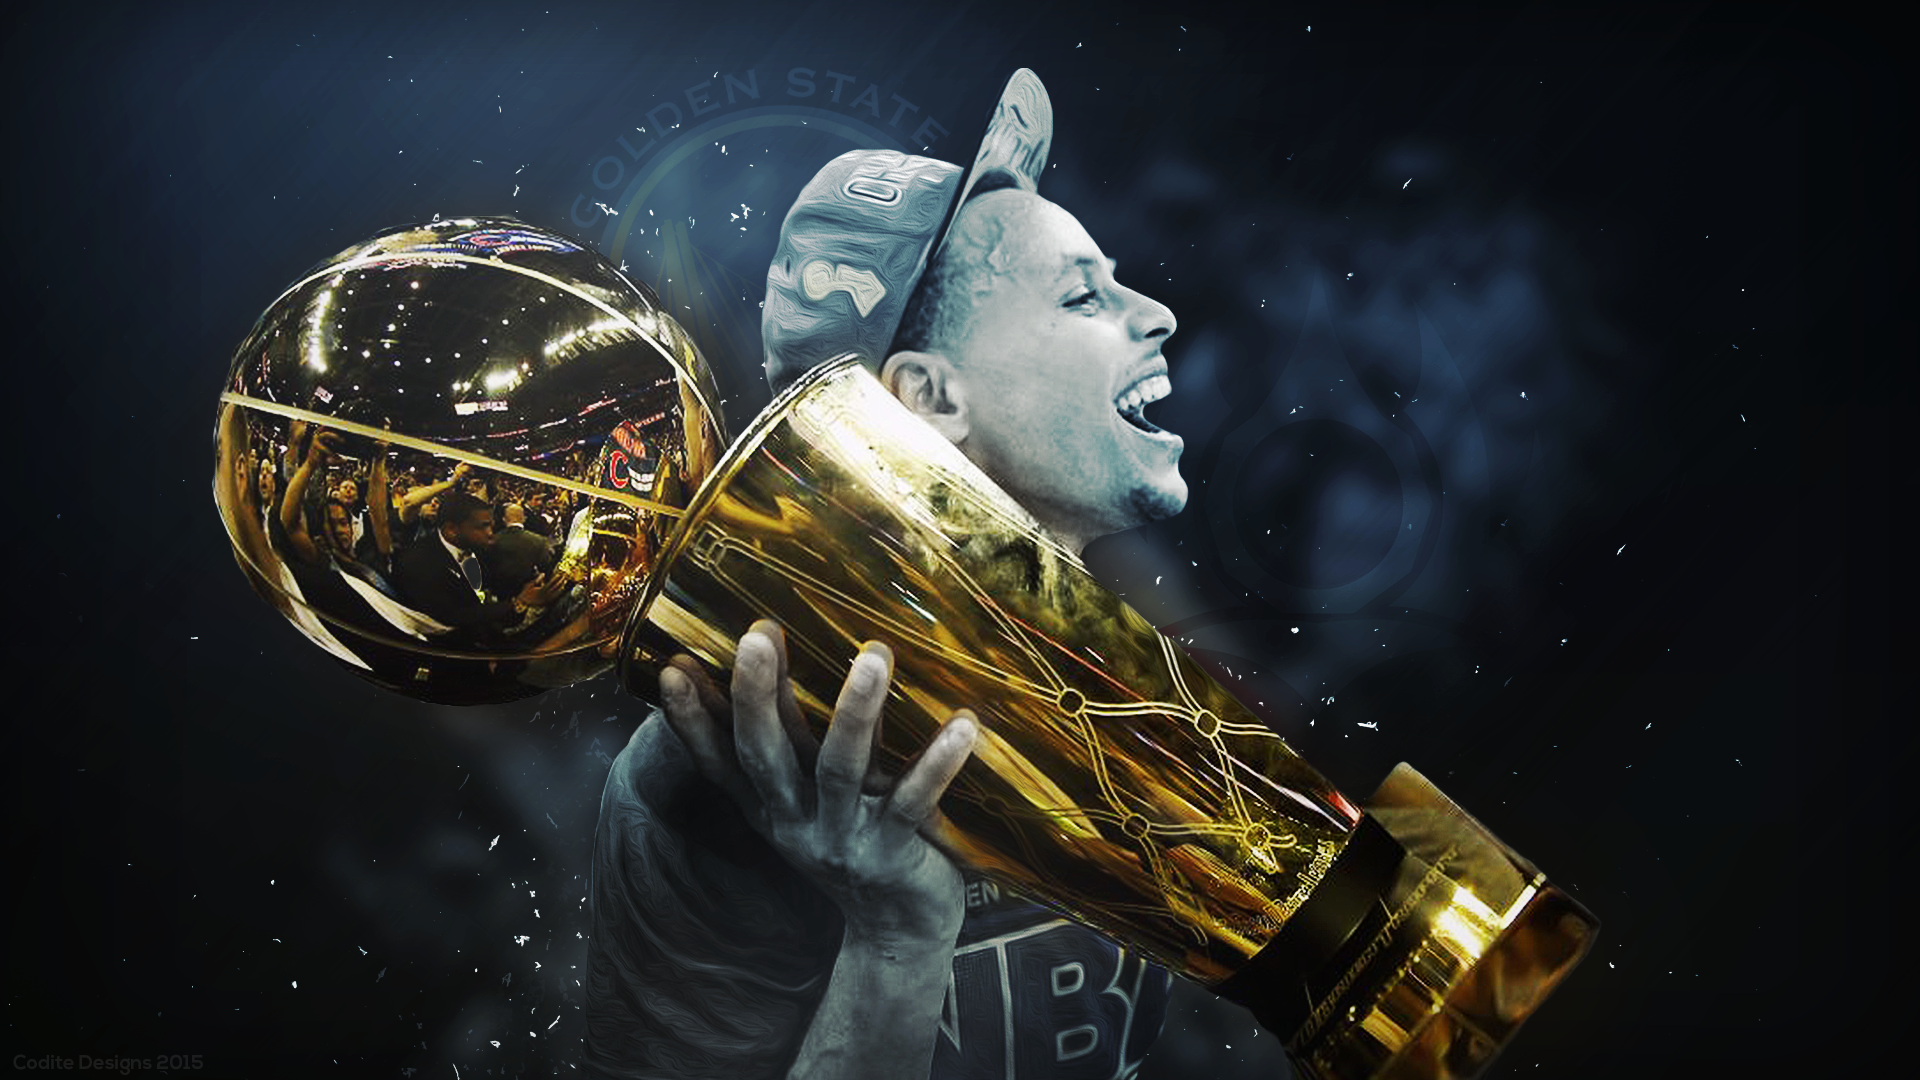 Fantastic Wallpaper Logo Stephen Curry - d61d7ef8c805e045251a610a1d87aa85  Graphic_14864.png